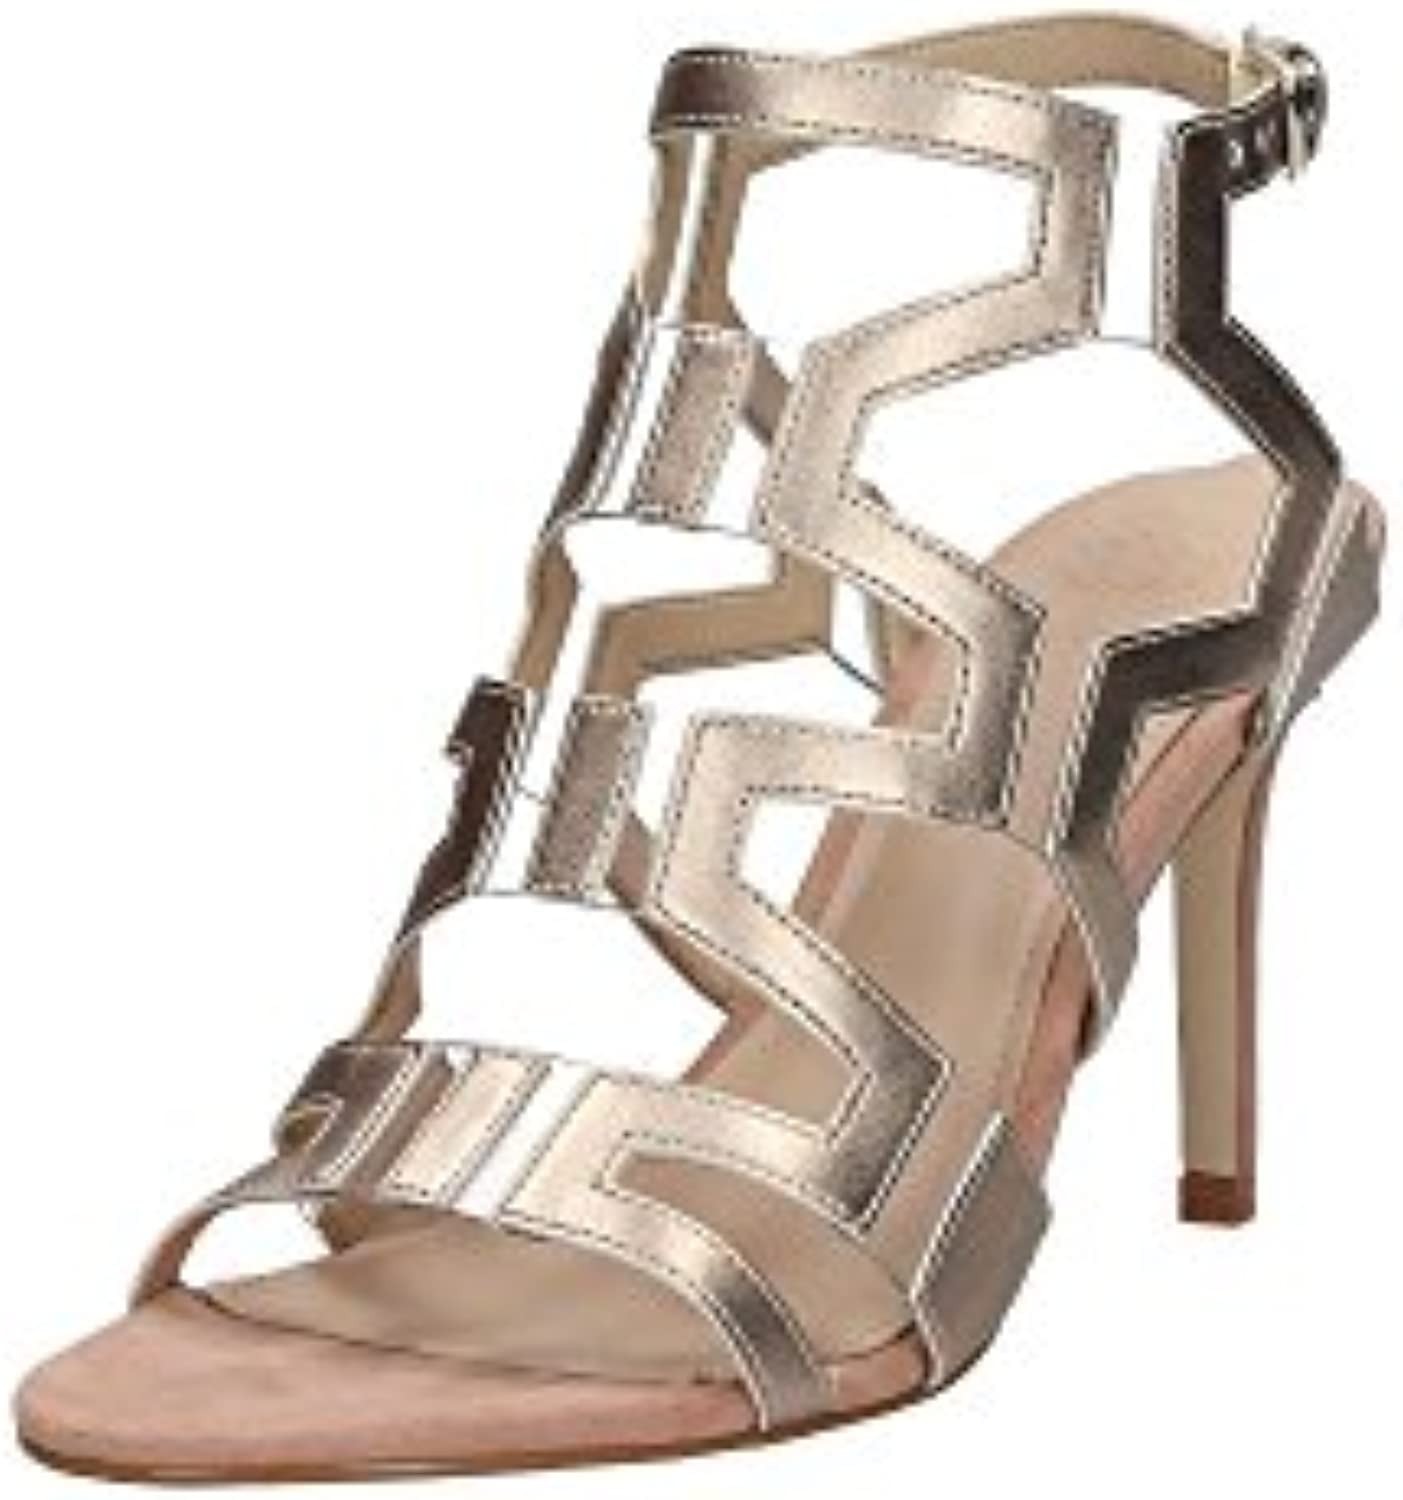 3318180e2ace Guess Women s Cyarra Fashion Sandals Beige Beige 5.5-6 B06XKMRWK9  B06XKMRWK9 B06XKMRWK9 Parent 0d7a29